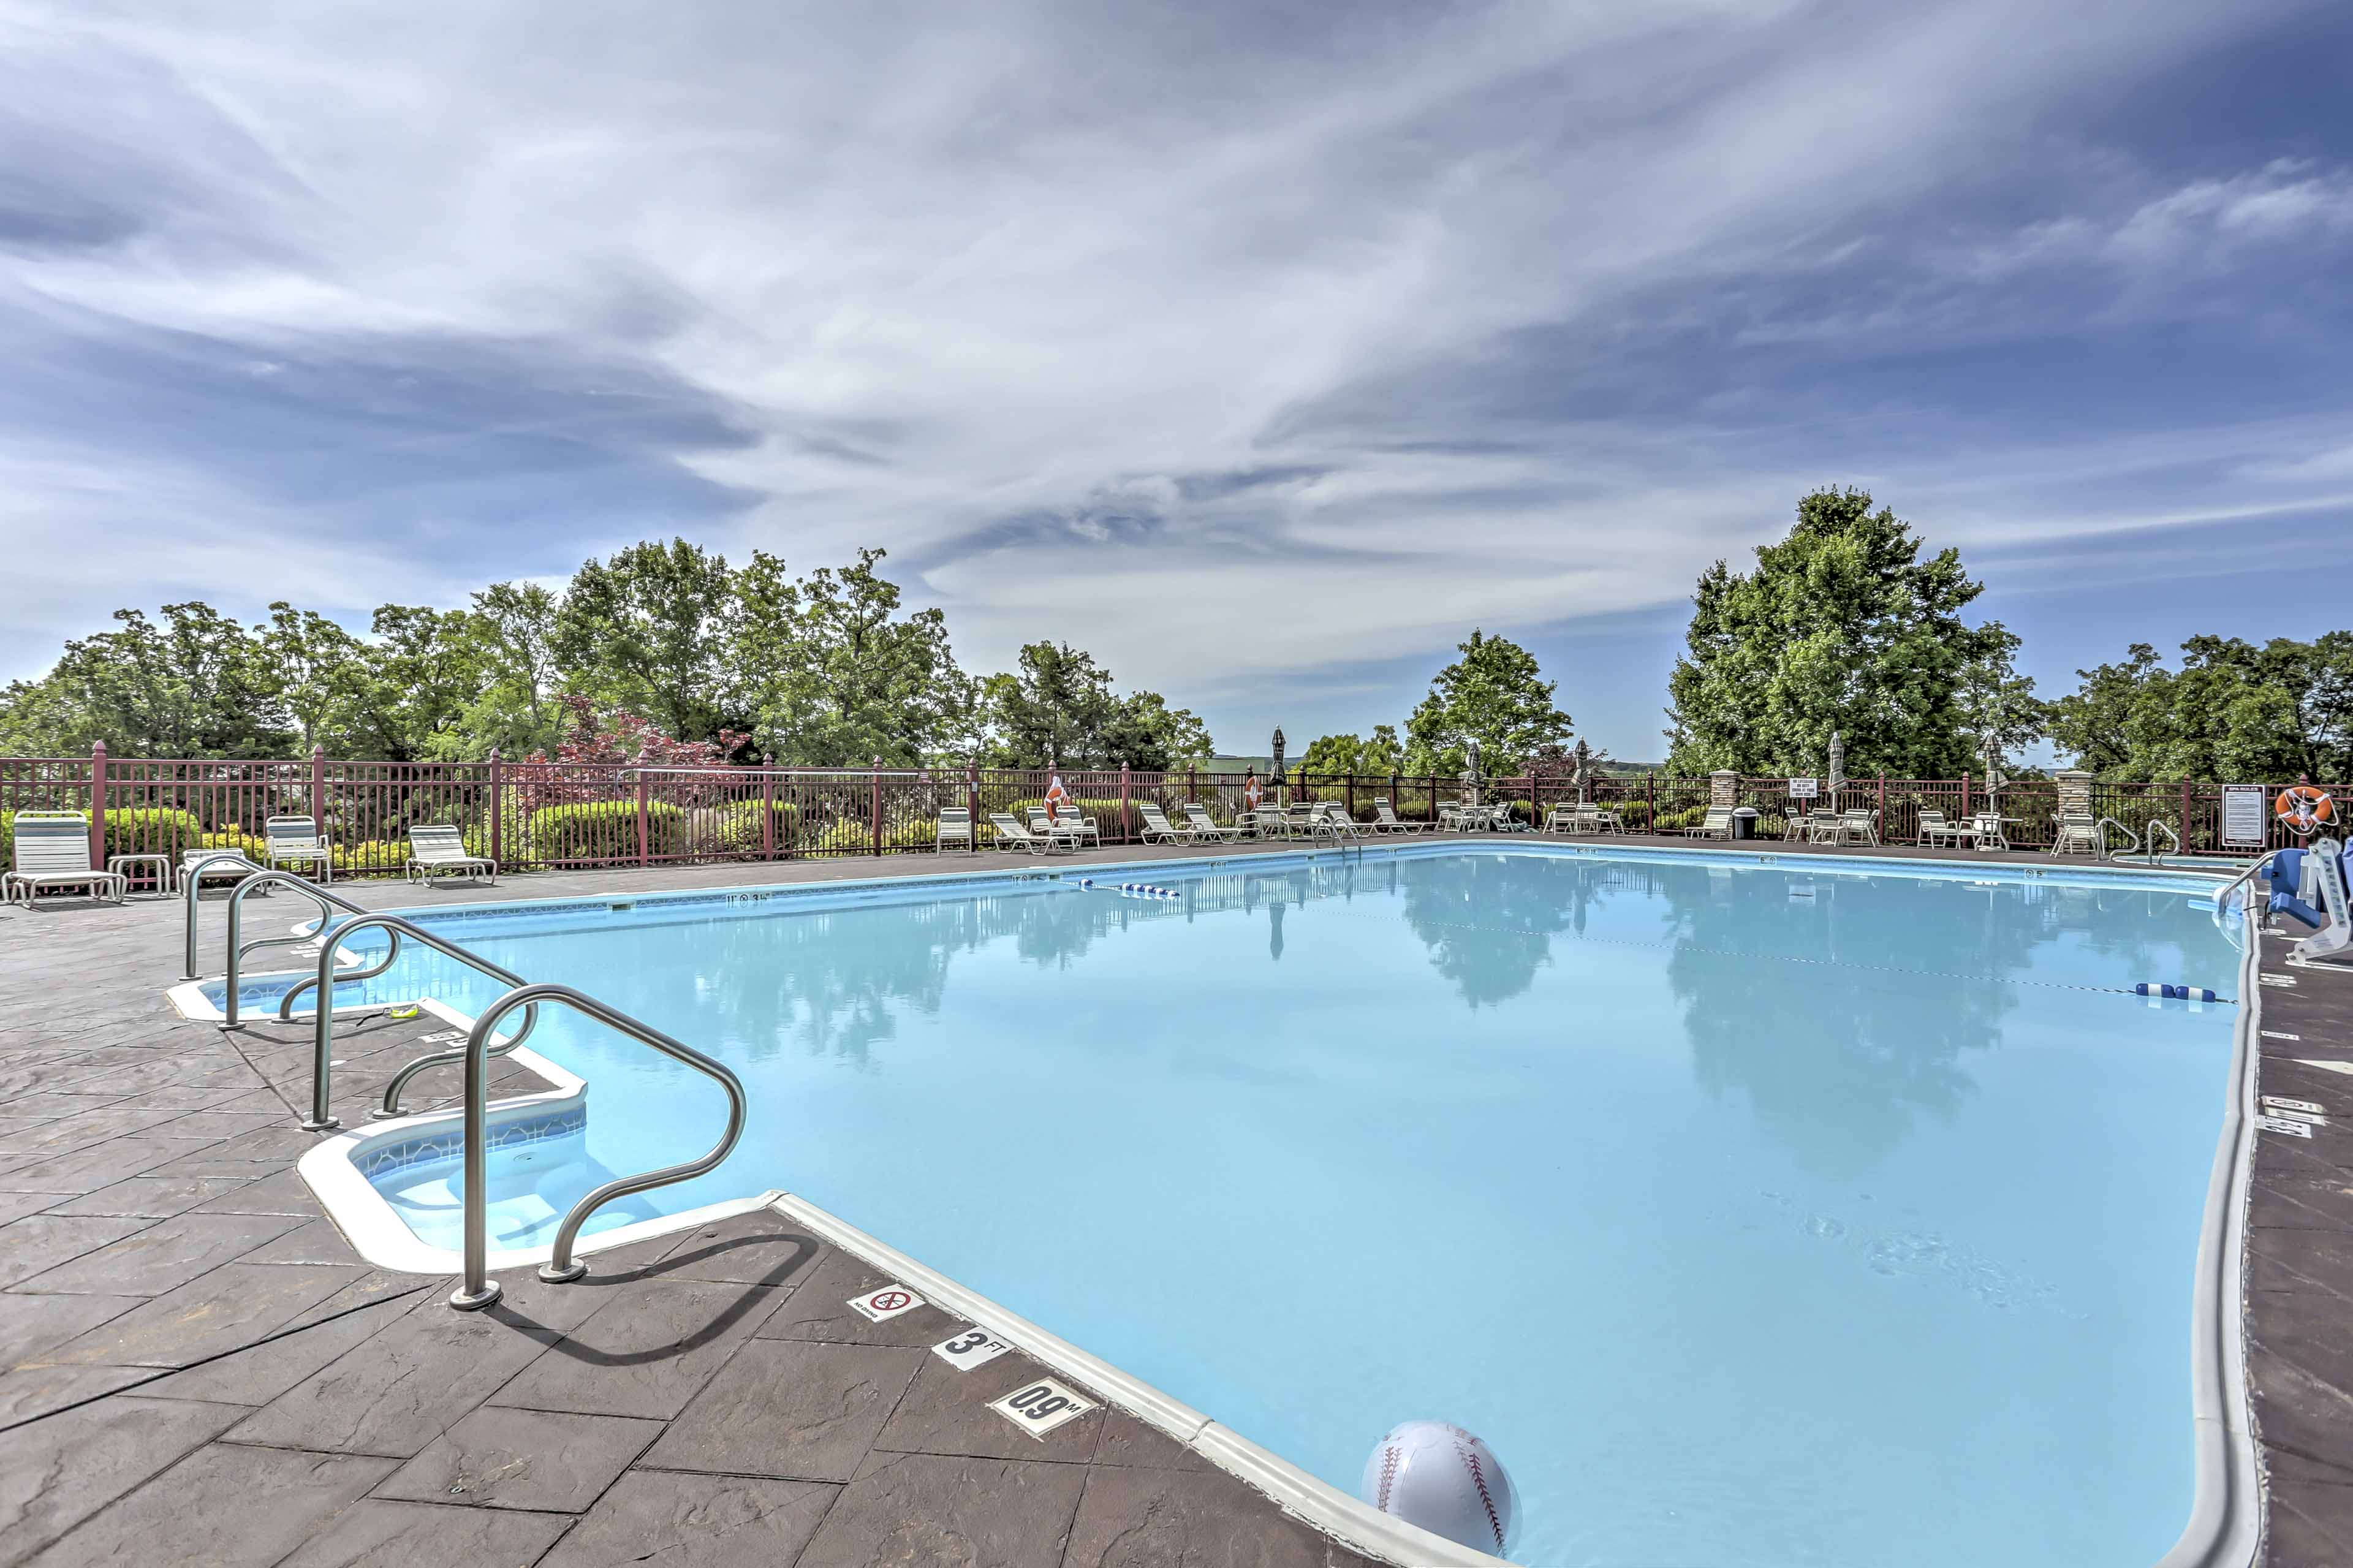 Catch some sun by one of the outdoor pools.